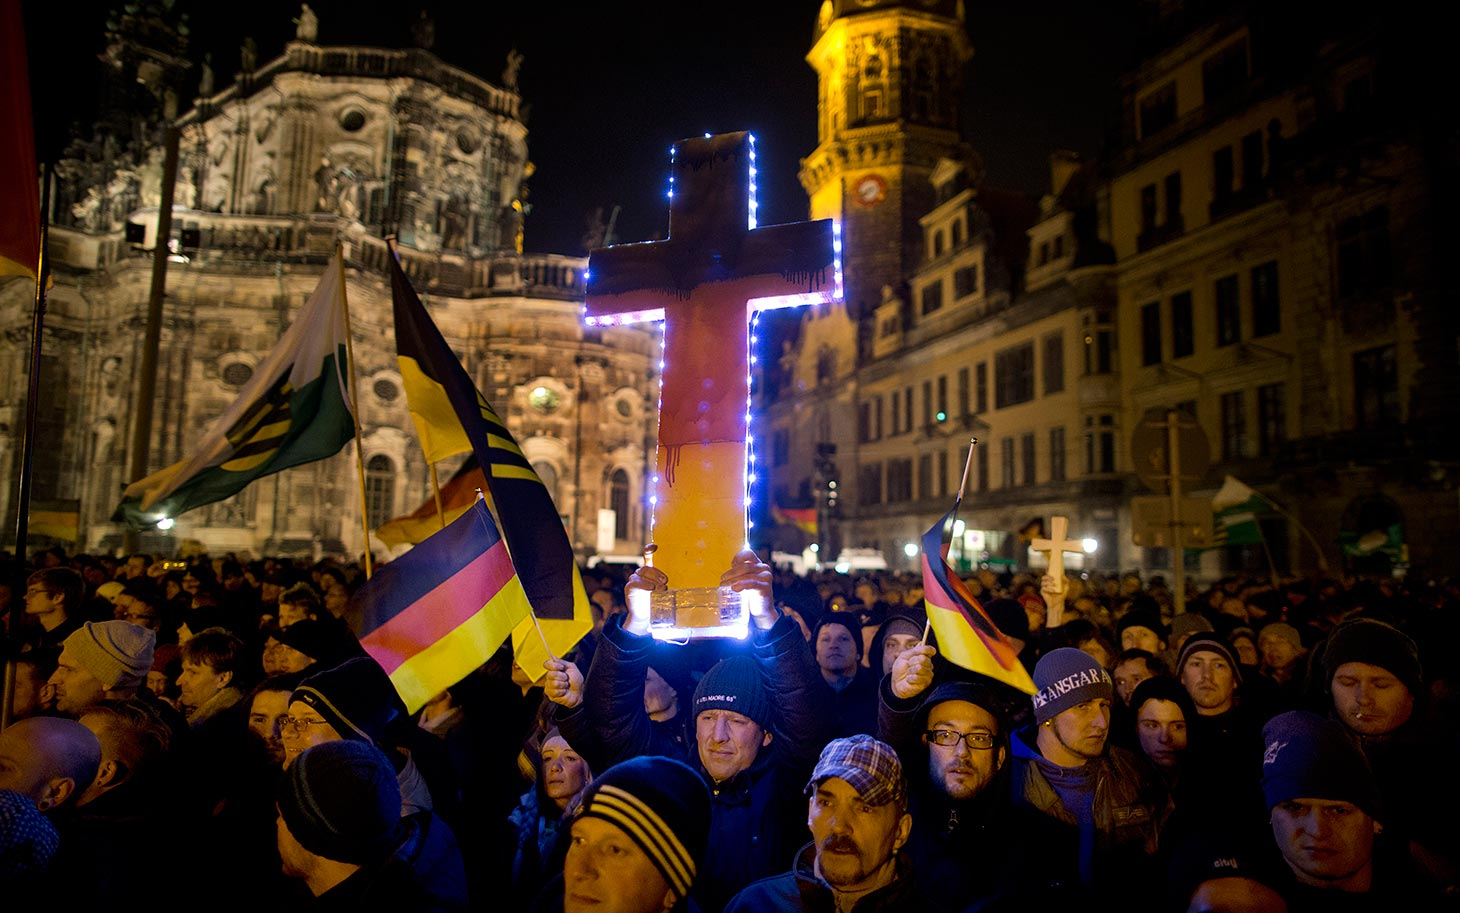 December 22, 2014 - Germany, Saxony, Dresden: A demonstrator holds a illuminated cross as he takes part in the demonstration of about 17,500 Supporters of the PEGIDA movement  at another of their weekly gatherings. Demonstrators shout slogans as: 'Luegenpresse' (Mendacious Press) and 'Wir sind das Volk (We are the people' the 1989 slogan of the GDR's peacefull freedom demonstrations). PEGIDA is an acronym for 'Patriotische Europaeer Gegen die Islamisierung des Abendlandes,' which translates to 'Patriotic Europeans Against the Islamification of the Occident' and has quickly gained a spreading mass appeal by demanding a more restrictive policy on Germany's acceptance of foreign refugees and asylum seekers. Parts of this  right-wing movement is also against the Euro and the Western liberal style of living in general. The first PEGIDA march took place in Dresden in October and has since attracted thousands of participants to its weekly gatherings that have also begun spreading to other cities in Germany. (Hermann BredehorstPolaris)